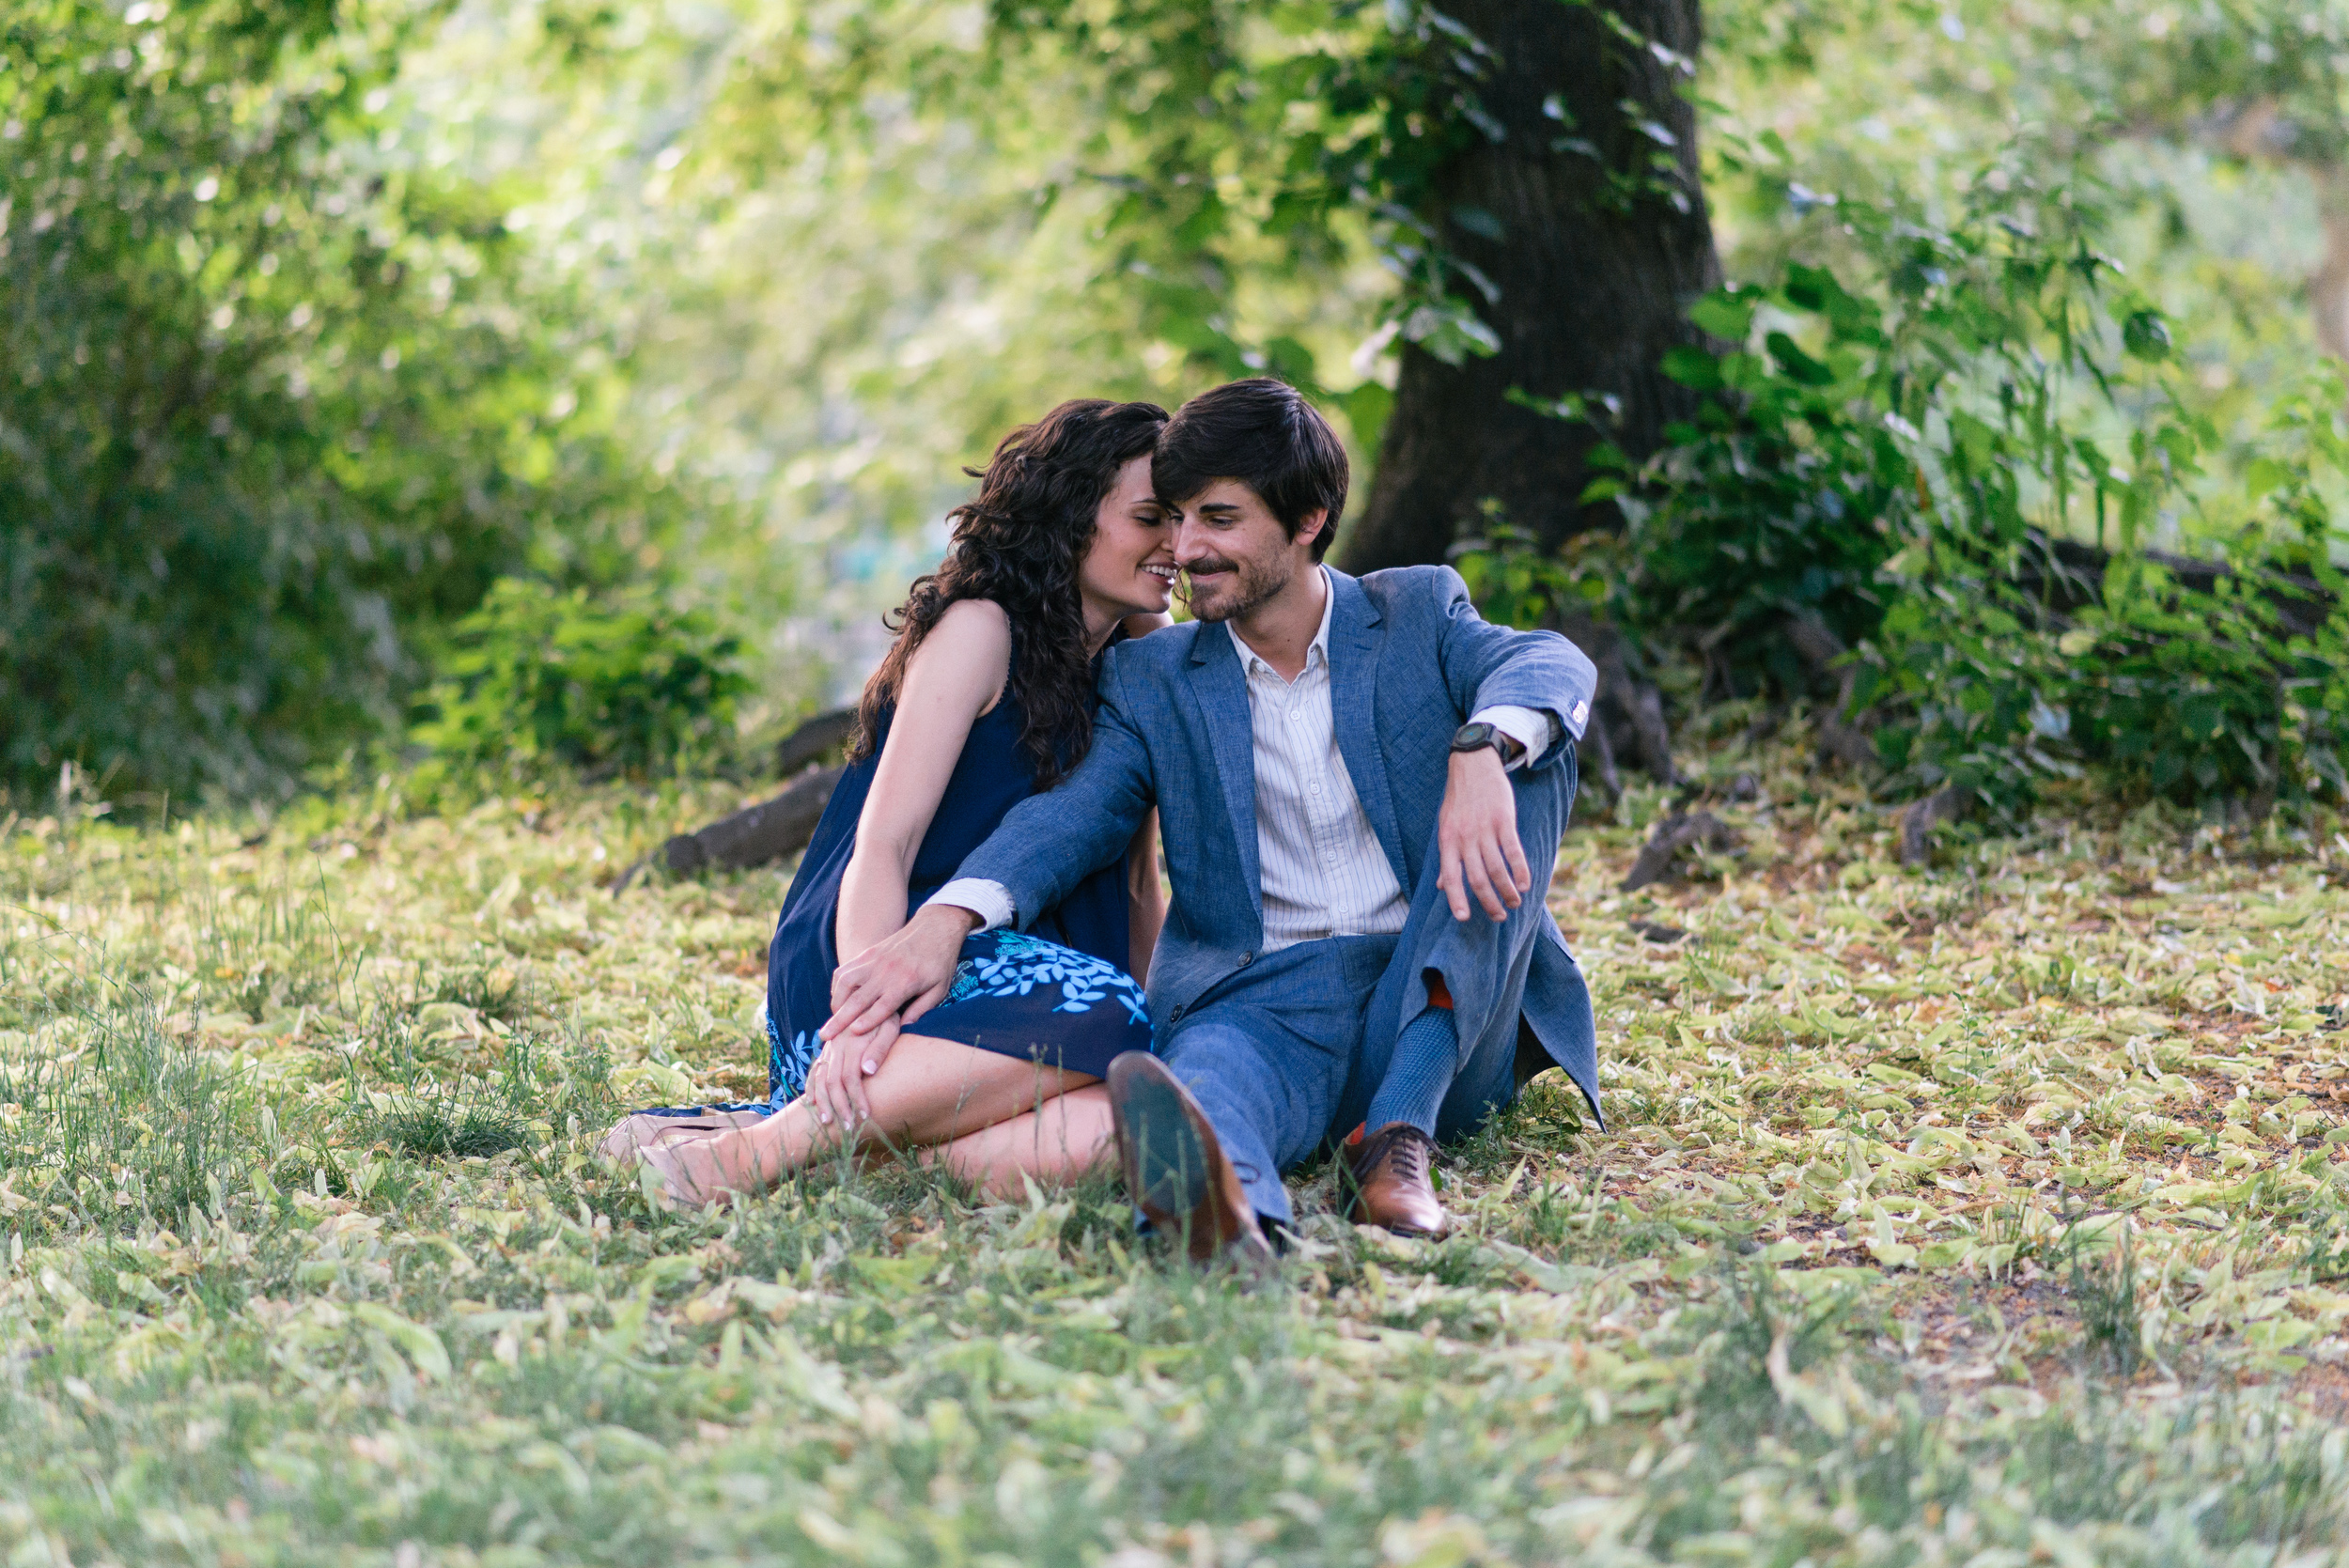 adam-and-tansy-new-york-city-central-park-lincoln-center-bethesda-fountain-engagement-session-june-2016- (77 of 176).jpg